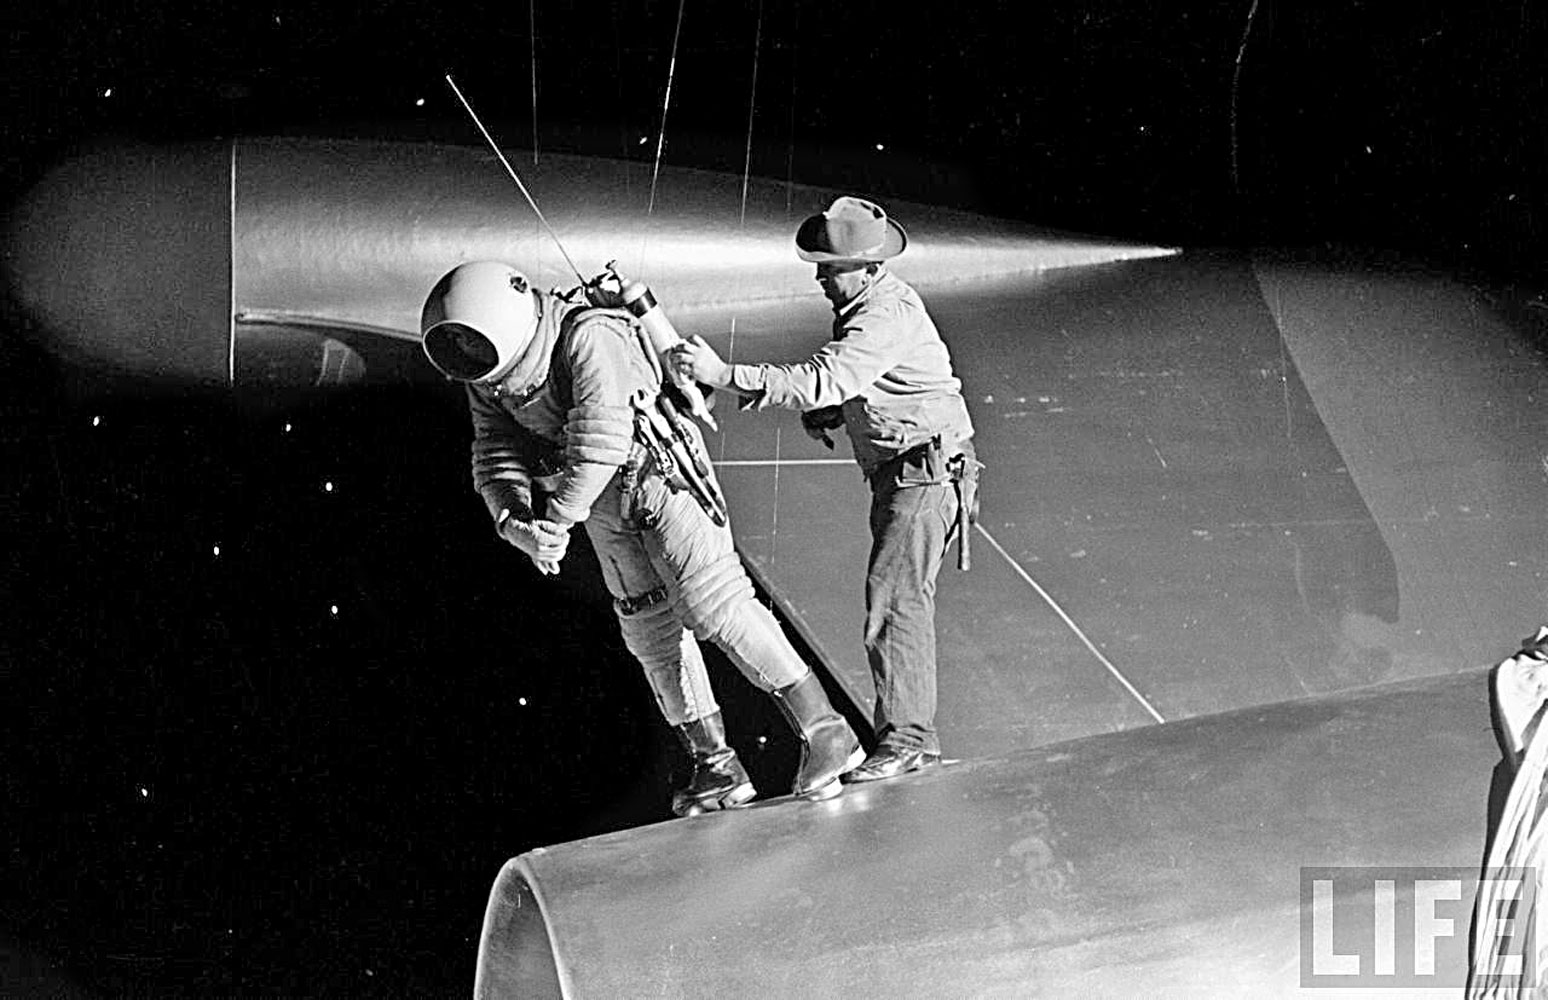 50s space suits - photo #37